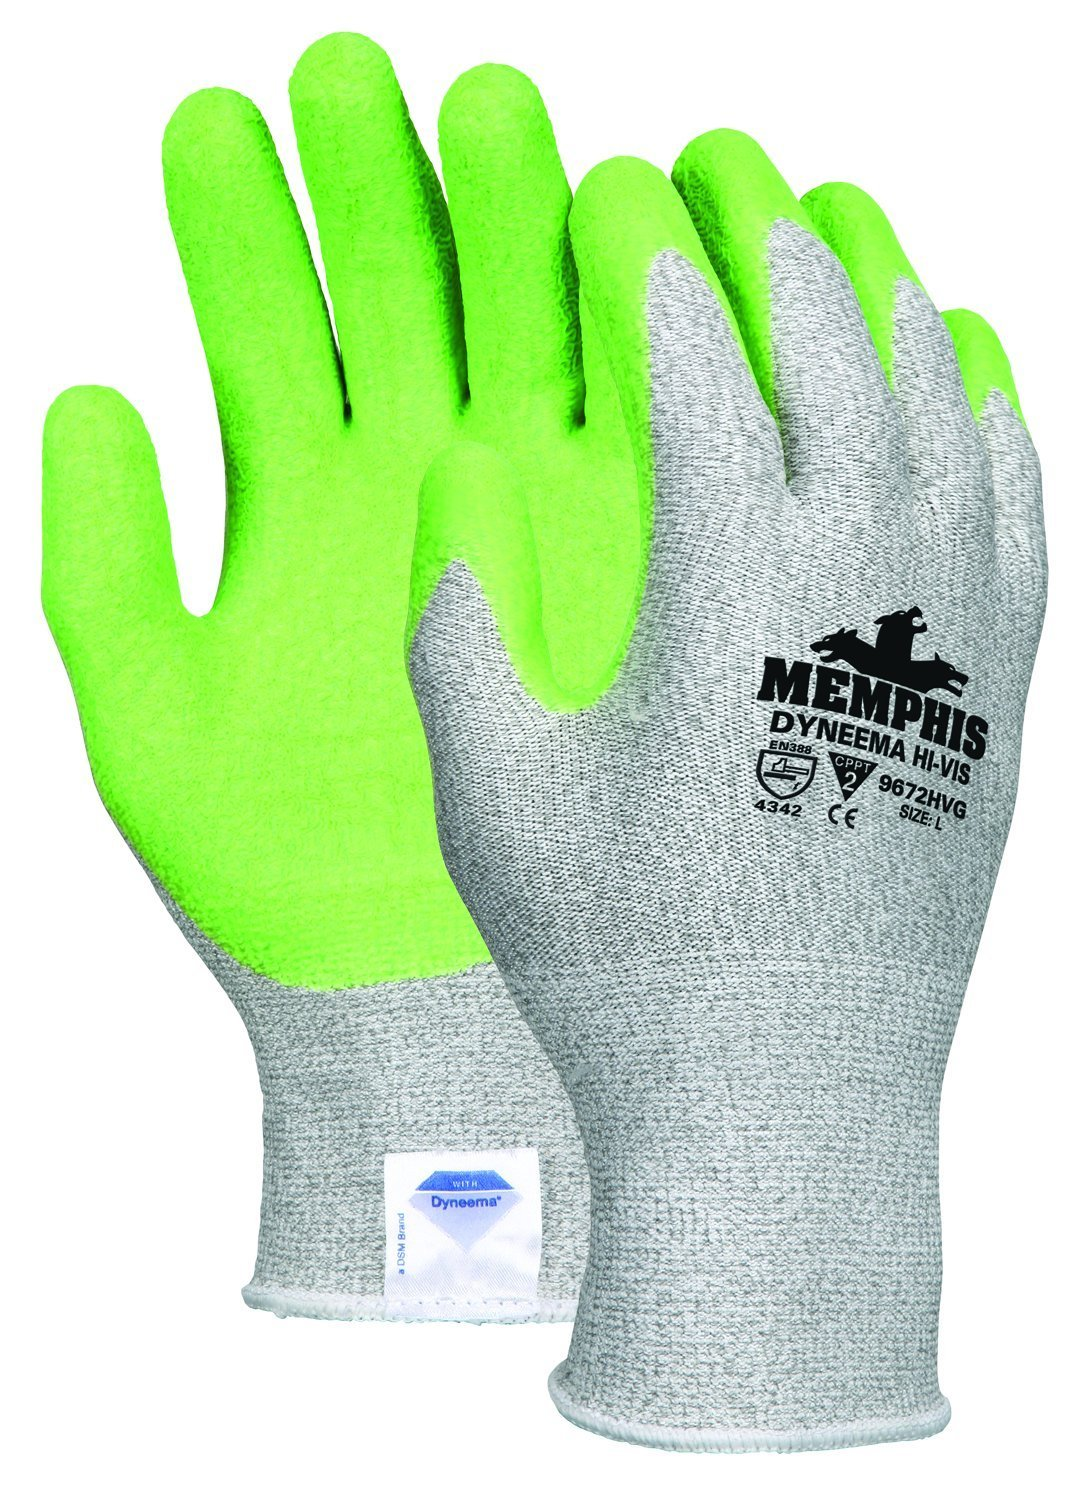 Memphis Glove 9672HVGS Dyneema 13-Gauge Shell Gloves with Crinkle Latex Coated Palm/Fingers, Green, Small, 1-Pair